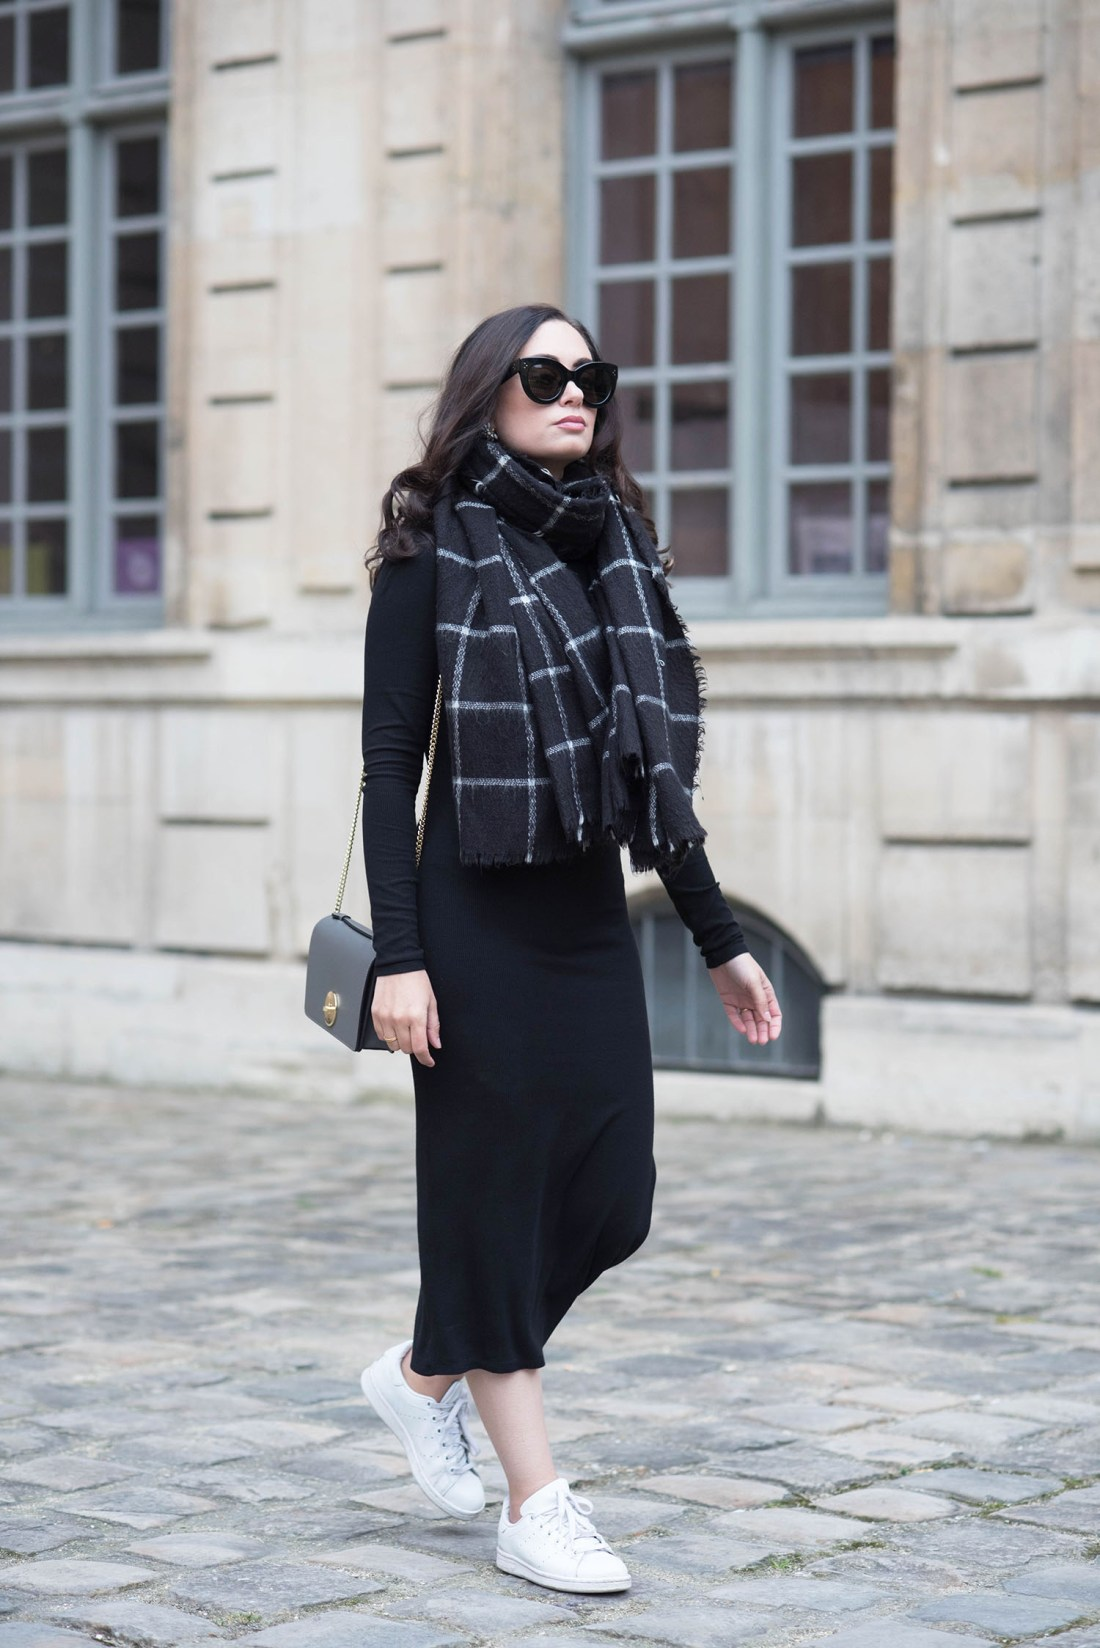 Fashion blogger Cee Fardoe of Coco & Vera walks at the Hotel de Sully in Paris wearing a Privacy Please midway dress and Adidas Stan Smith sneakers